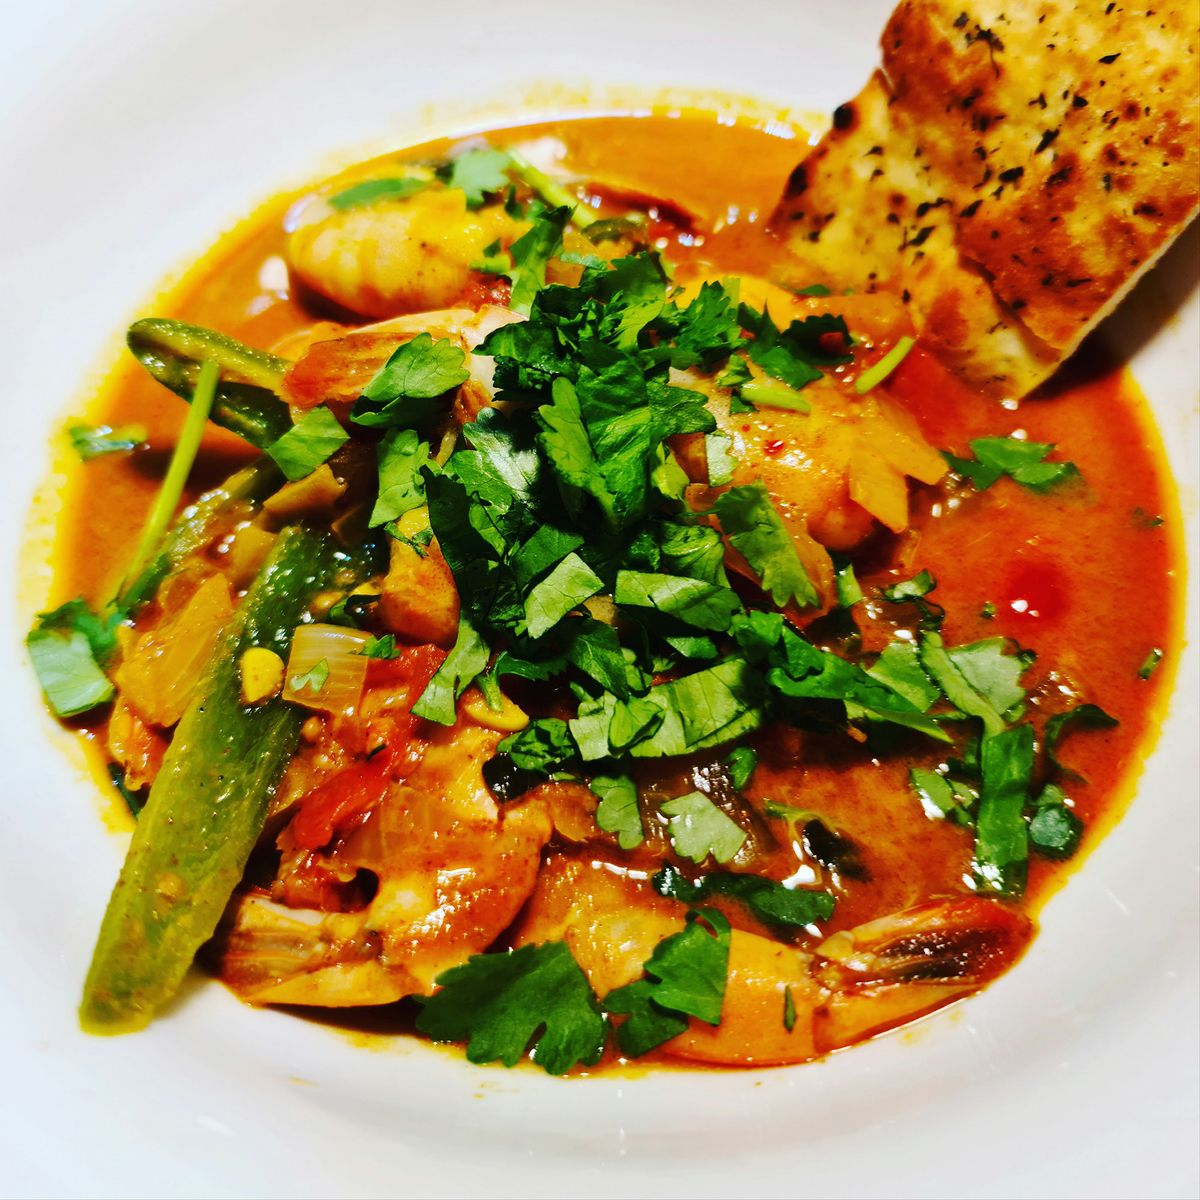 Sri Lankan Cuisine Is Hot: Why Not Make This Prawn Curry at Home?